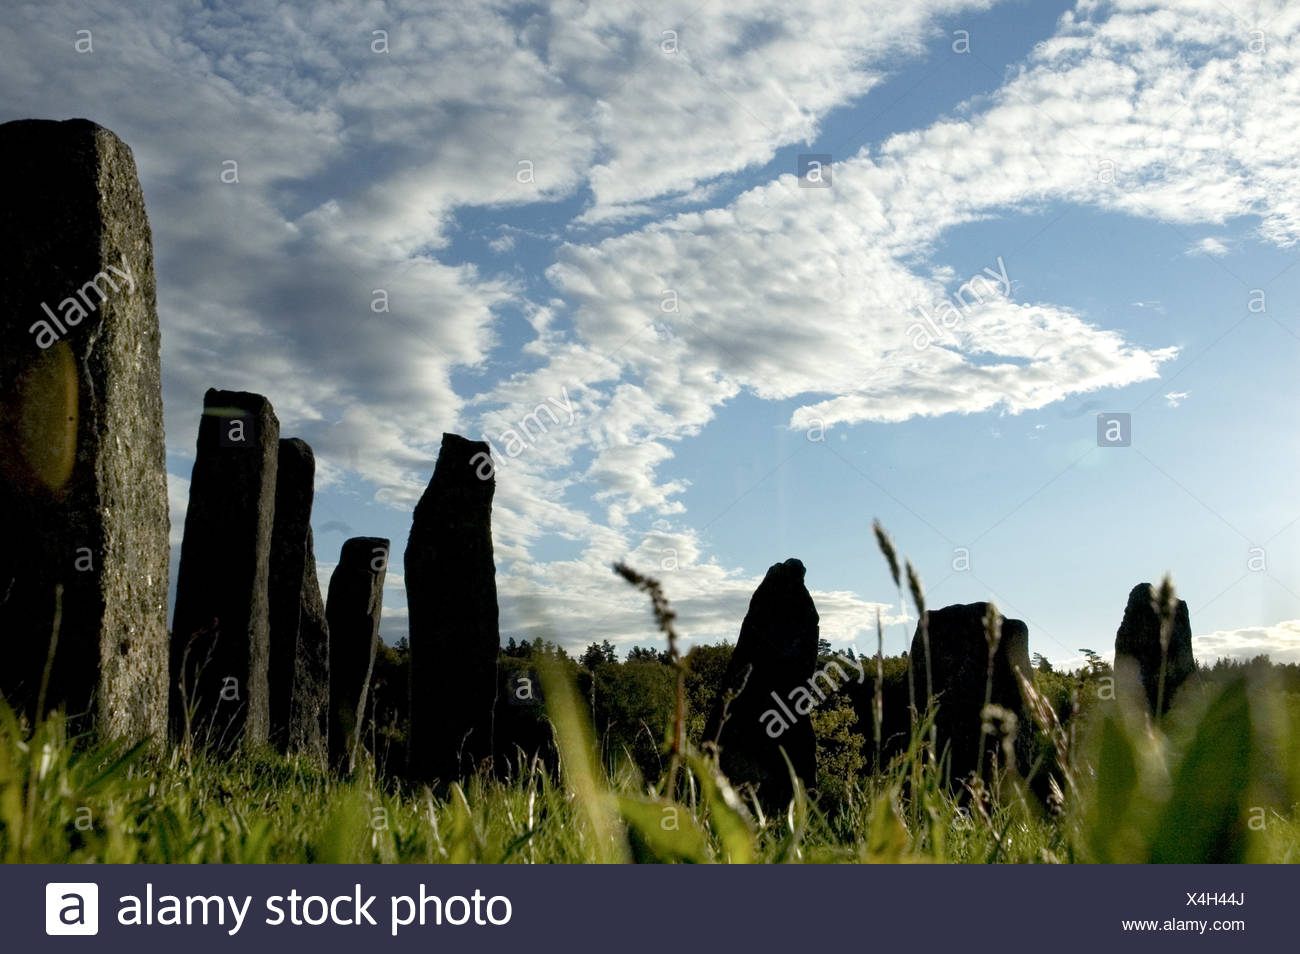 Rock formations in a grave, Vastkusten, Bohuslan, Sweden - Stock Image